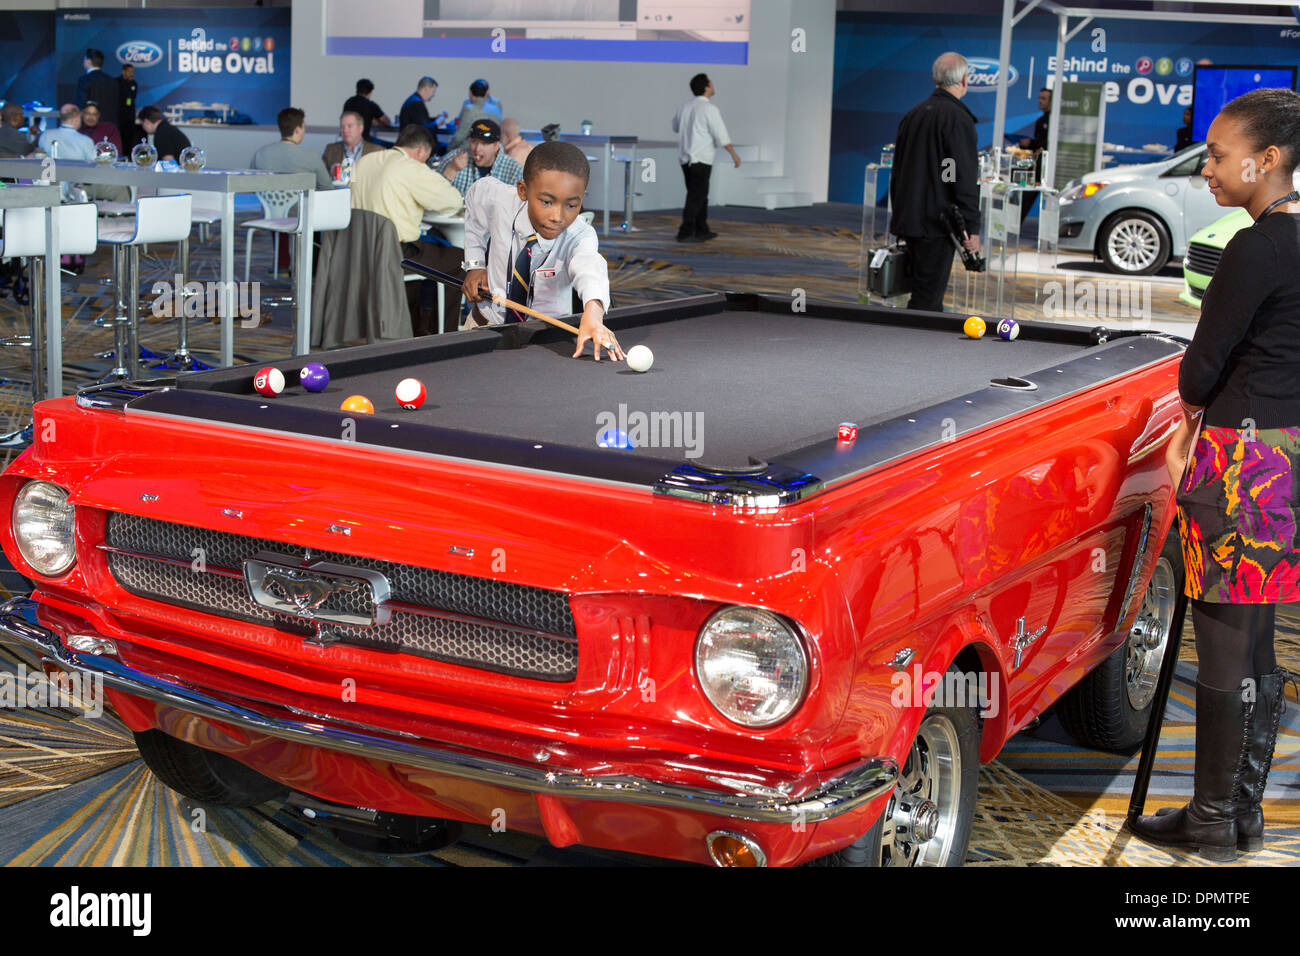 Children Play On A Pool Table Made To Look Like A Ford Mustang Stock - Mustang pool table